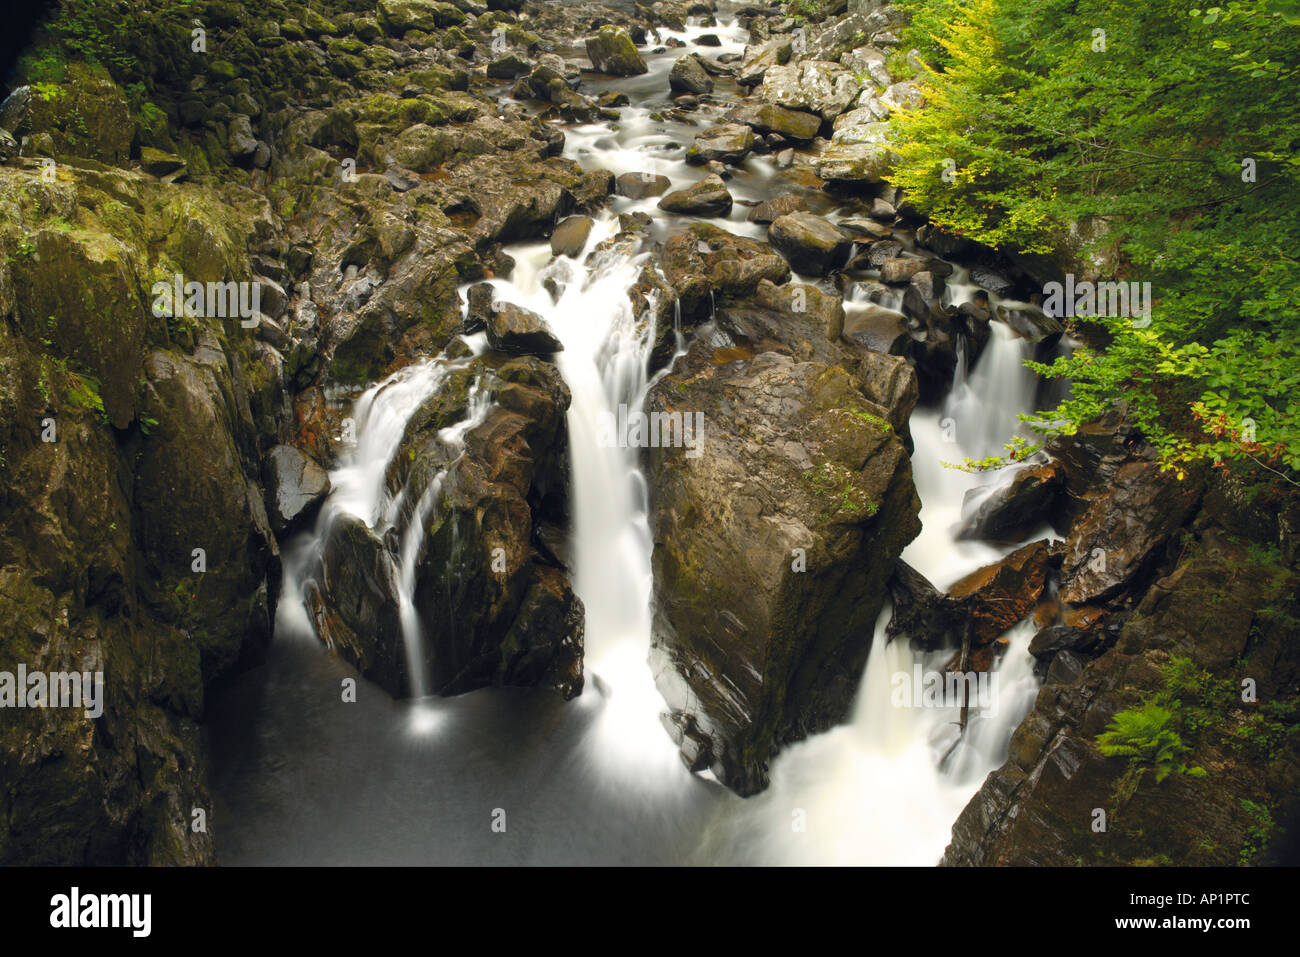 Black Linn Falls On The River Braan The Hermitage Dunkeld Perthshire Scotland UK - Stock Image